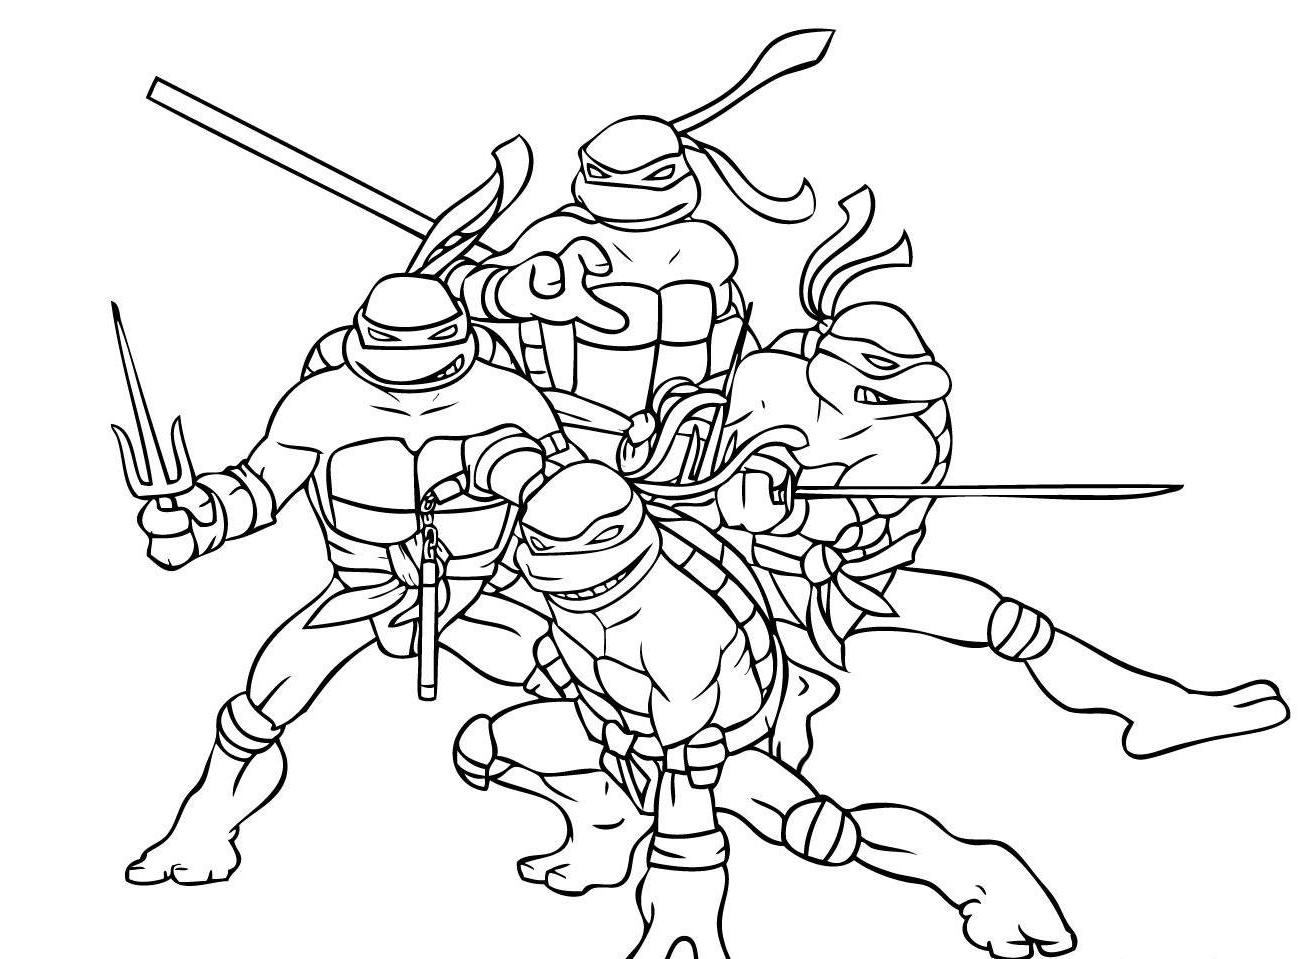 ninja turtle coloring pages to print coloring pages of ninja turtles coloring home turtle pages print ninja coloring to